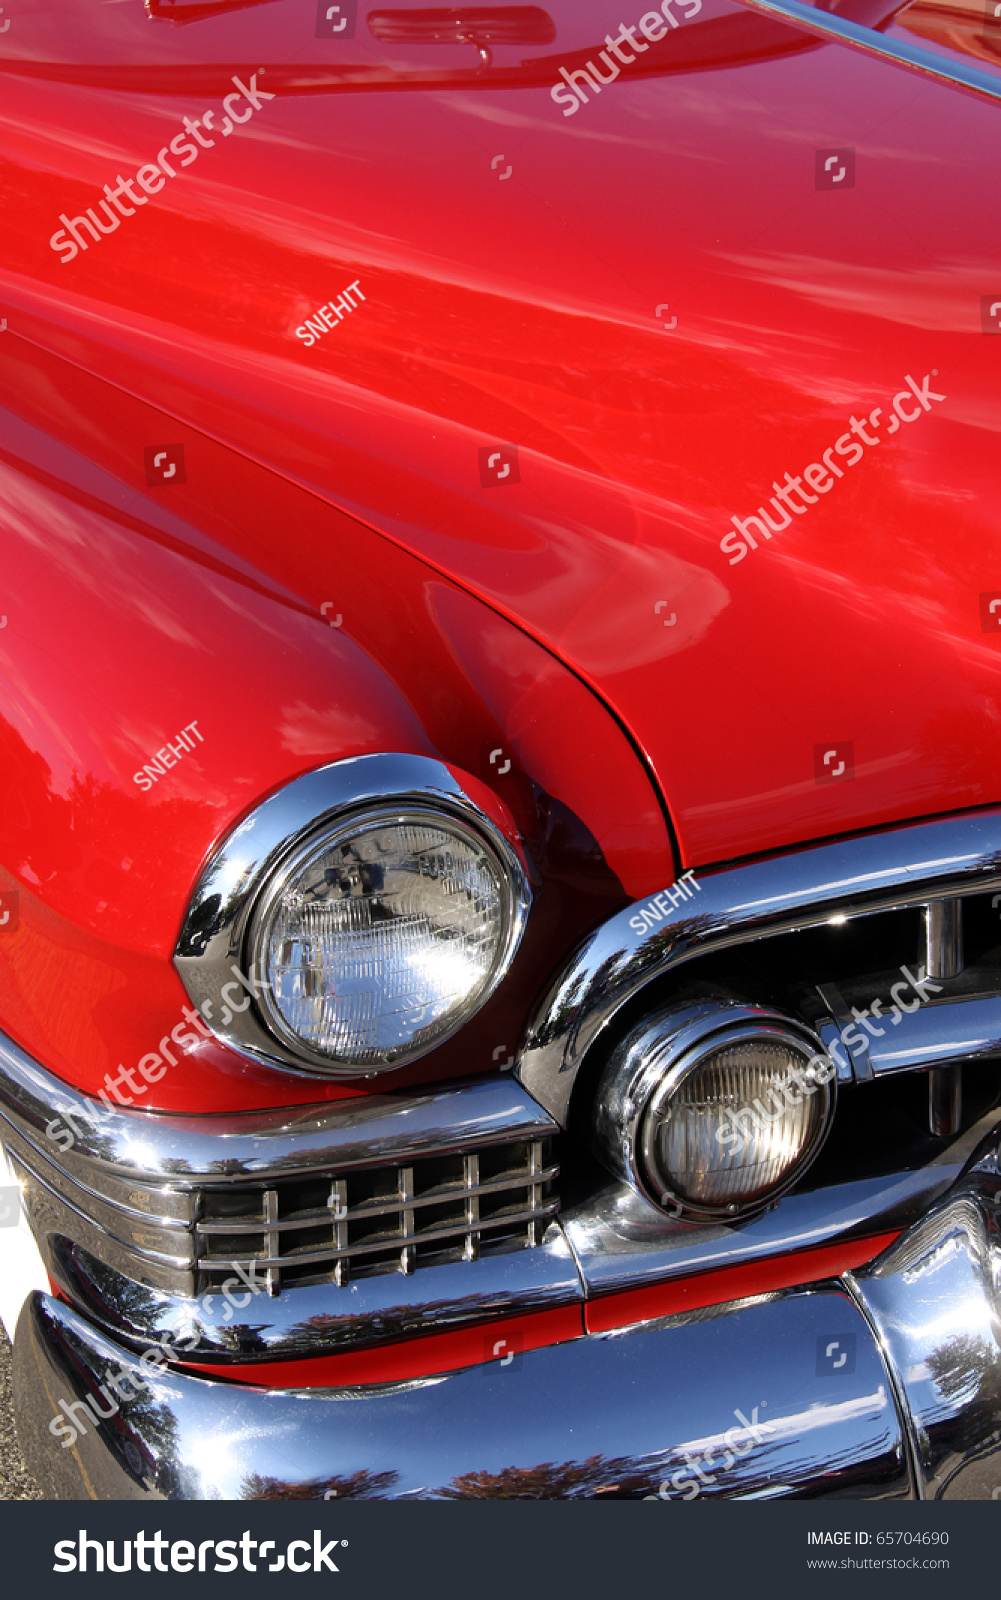 Classic Car With Close Up Shot Front Right View Stock